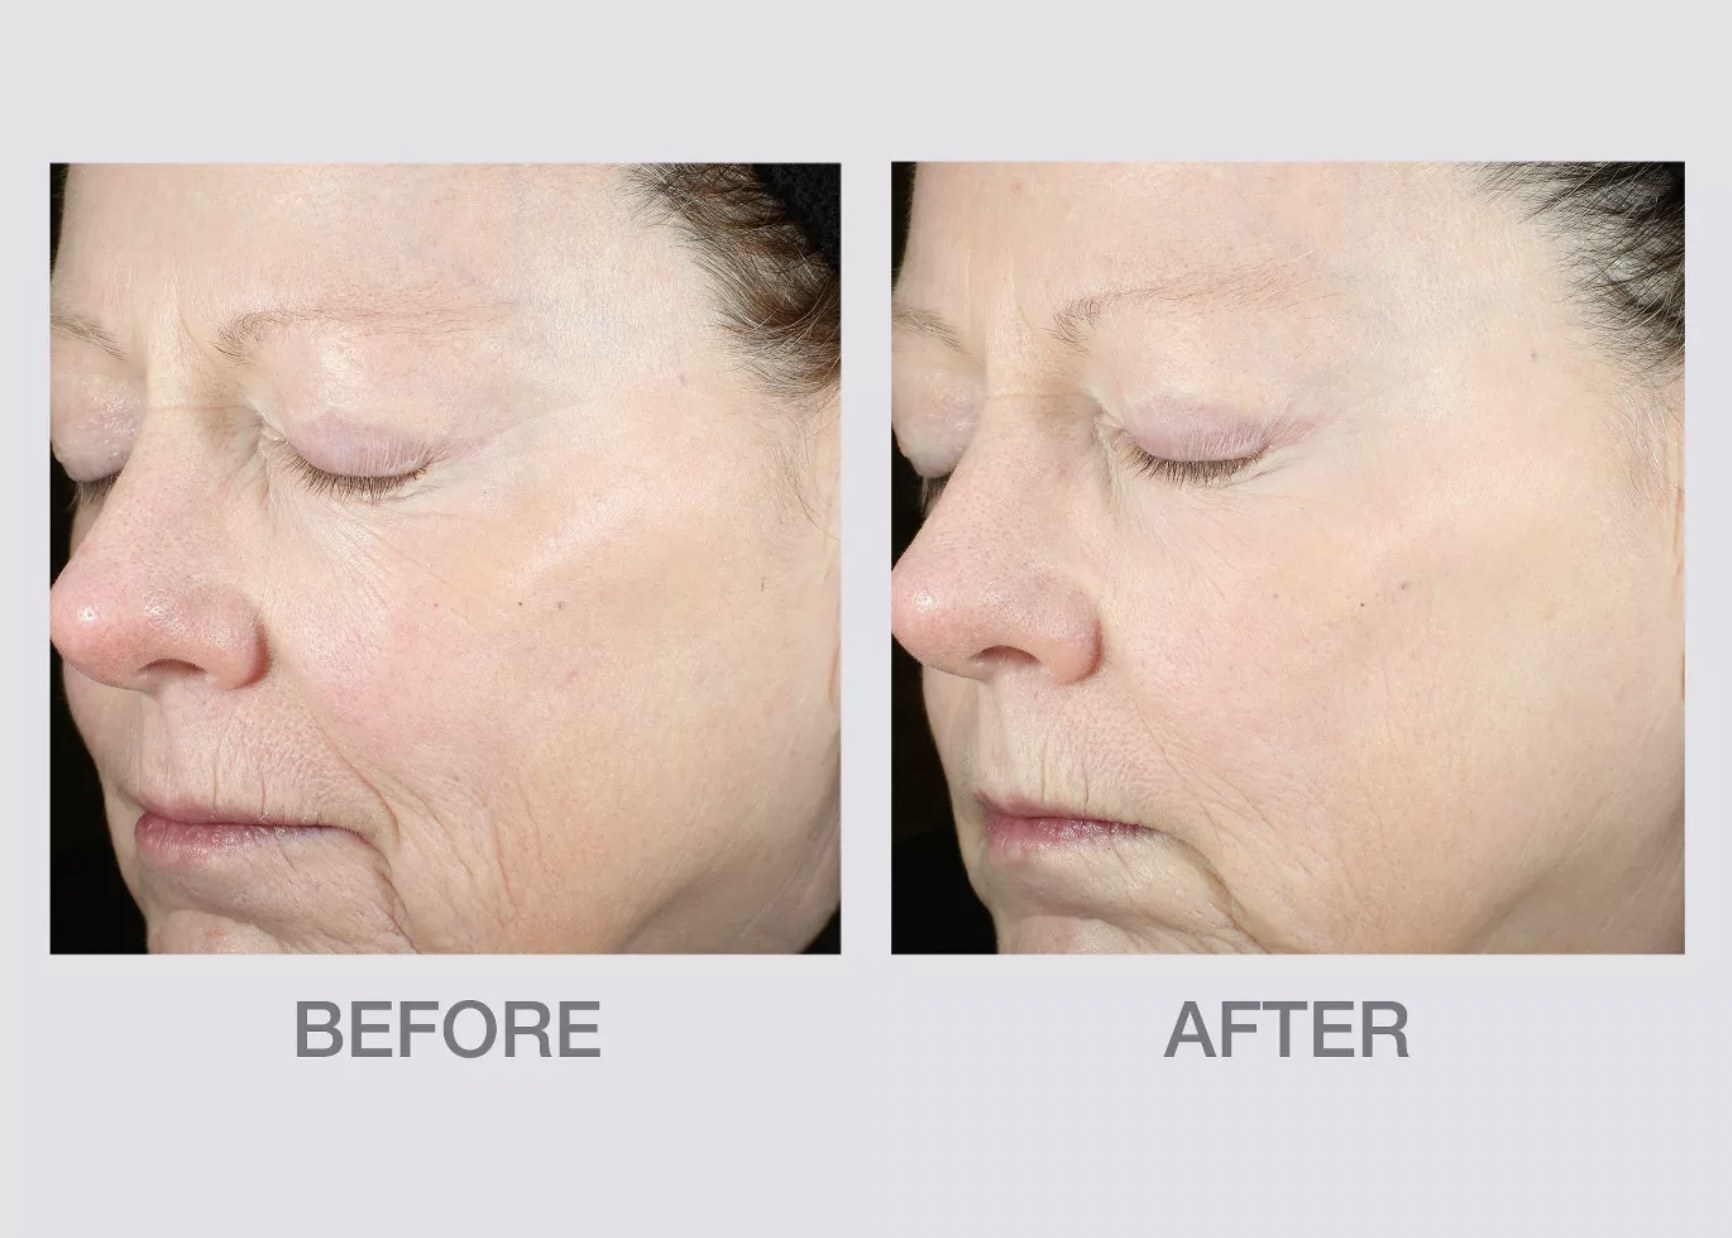 a before and after shot of a person with fine lines before, and less fine lines after